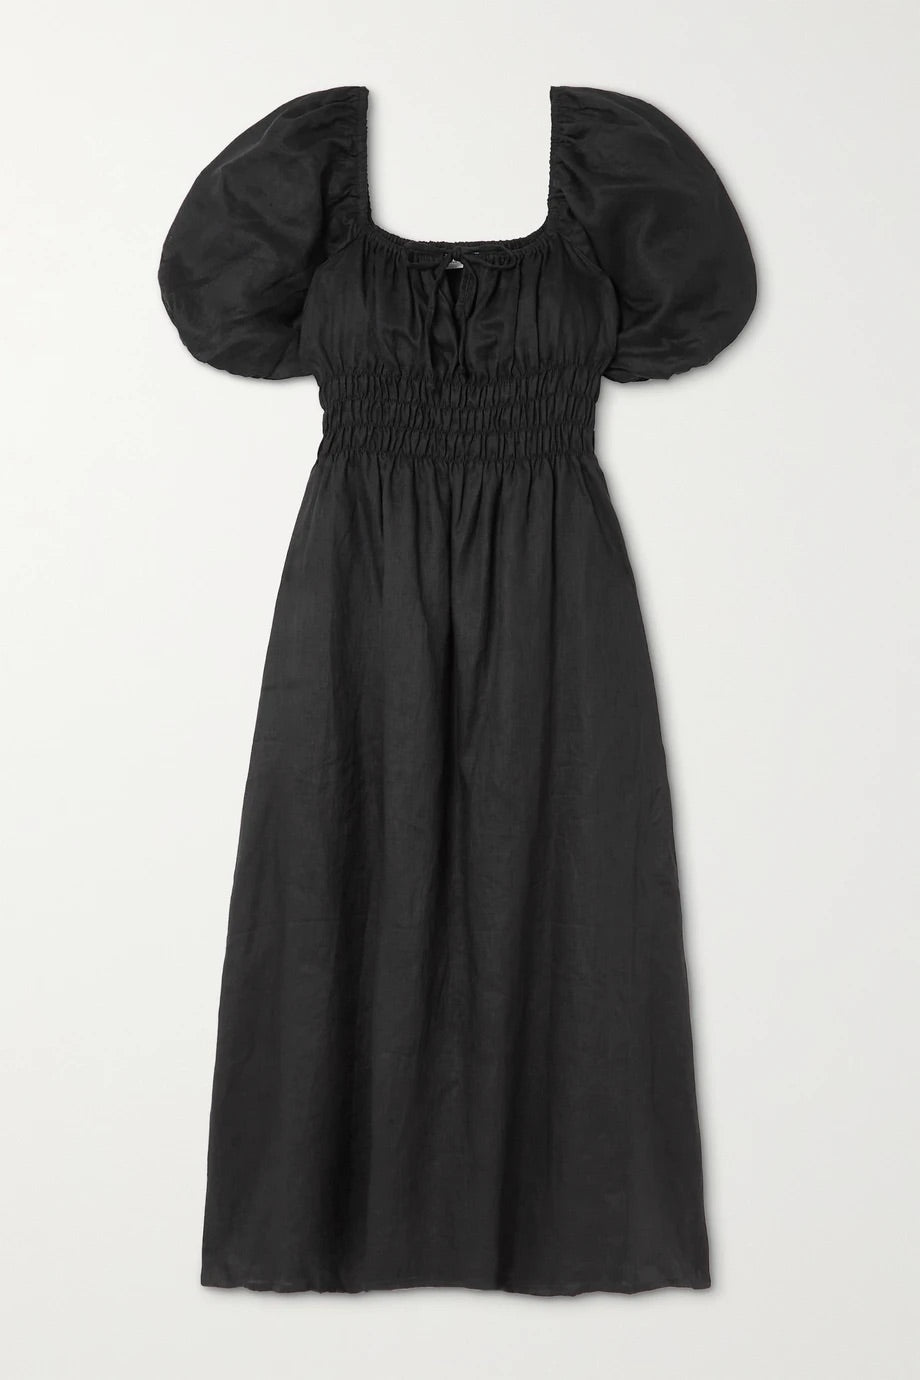 Maurelle Dress - Plain Black